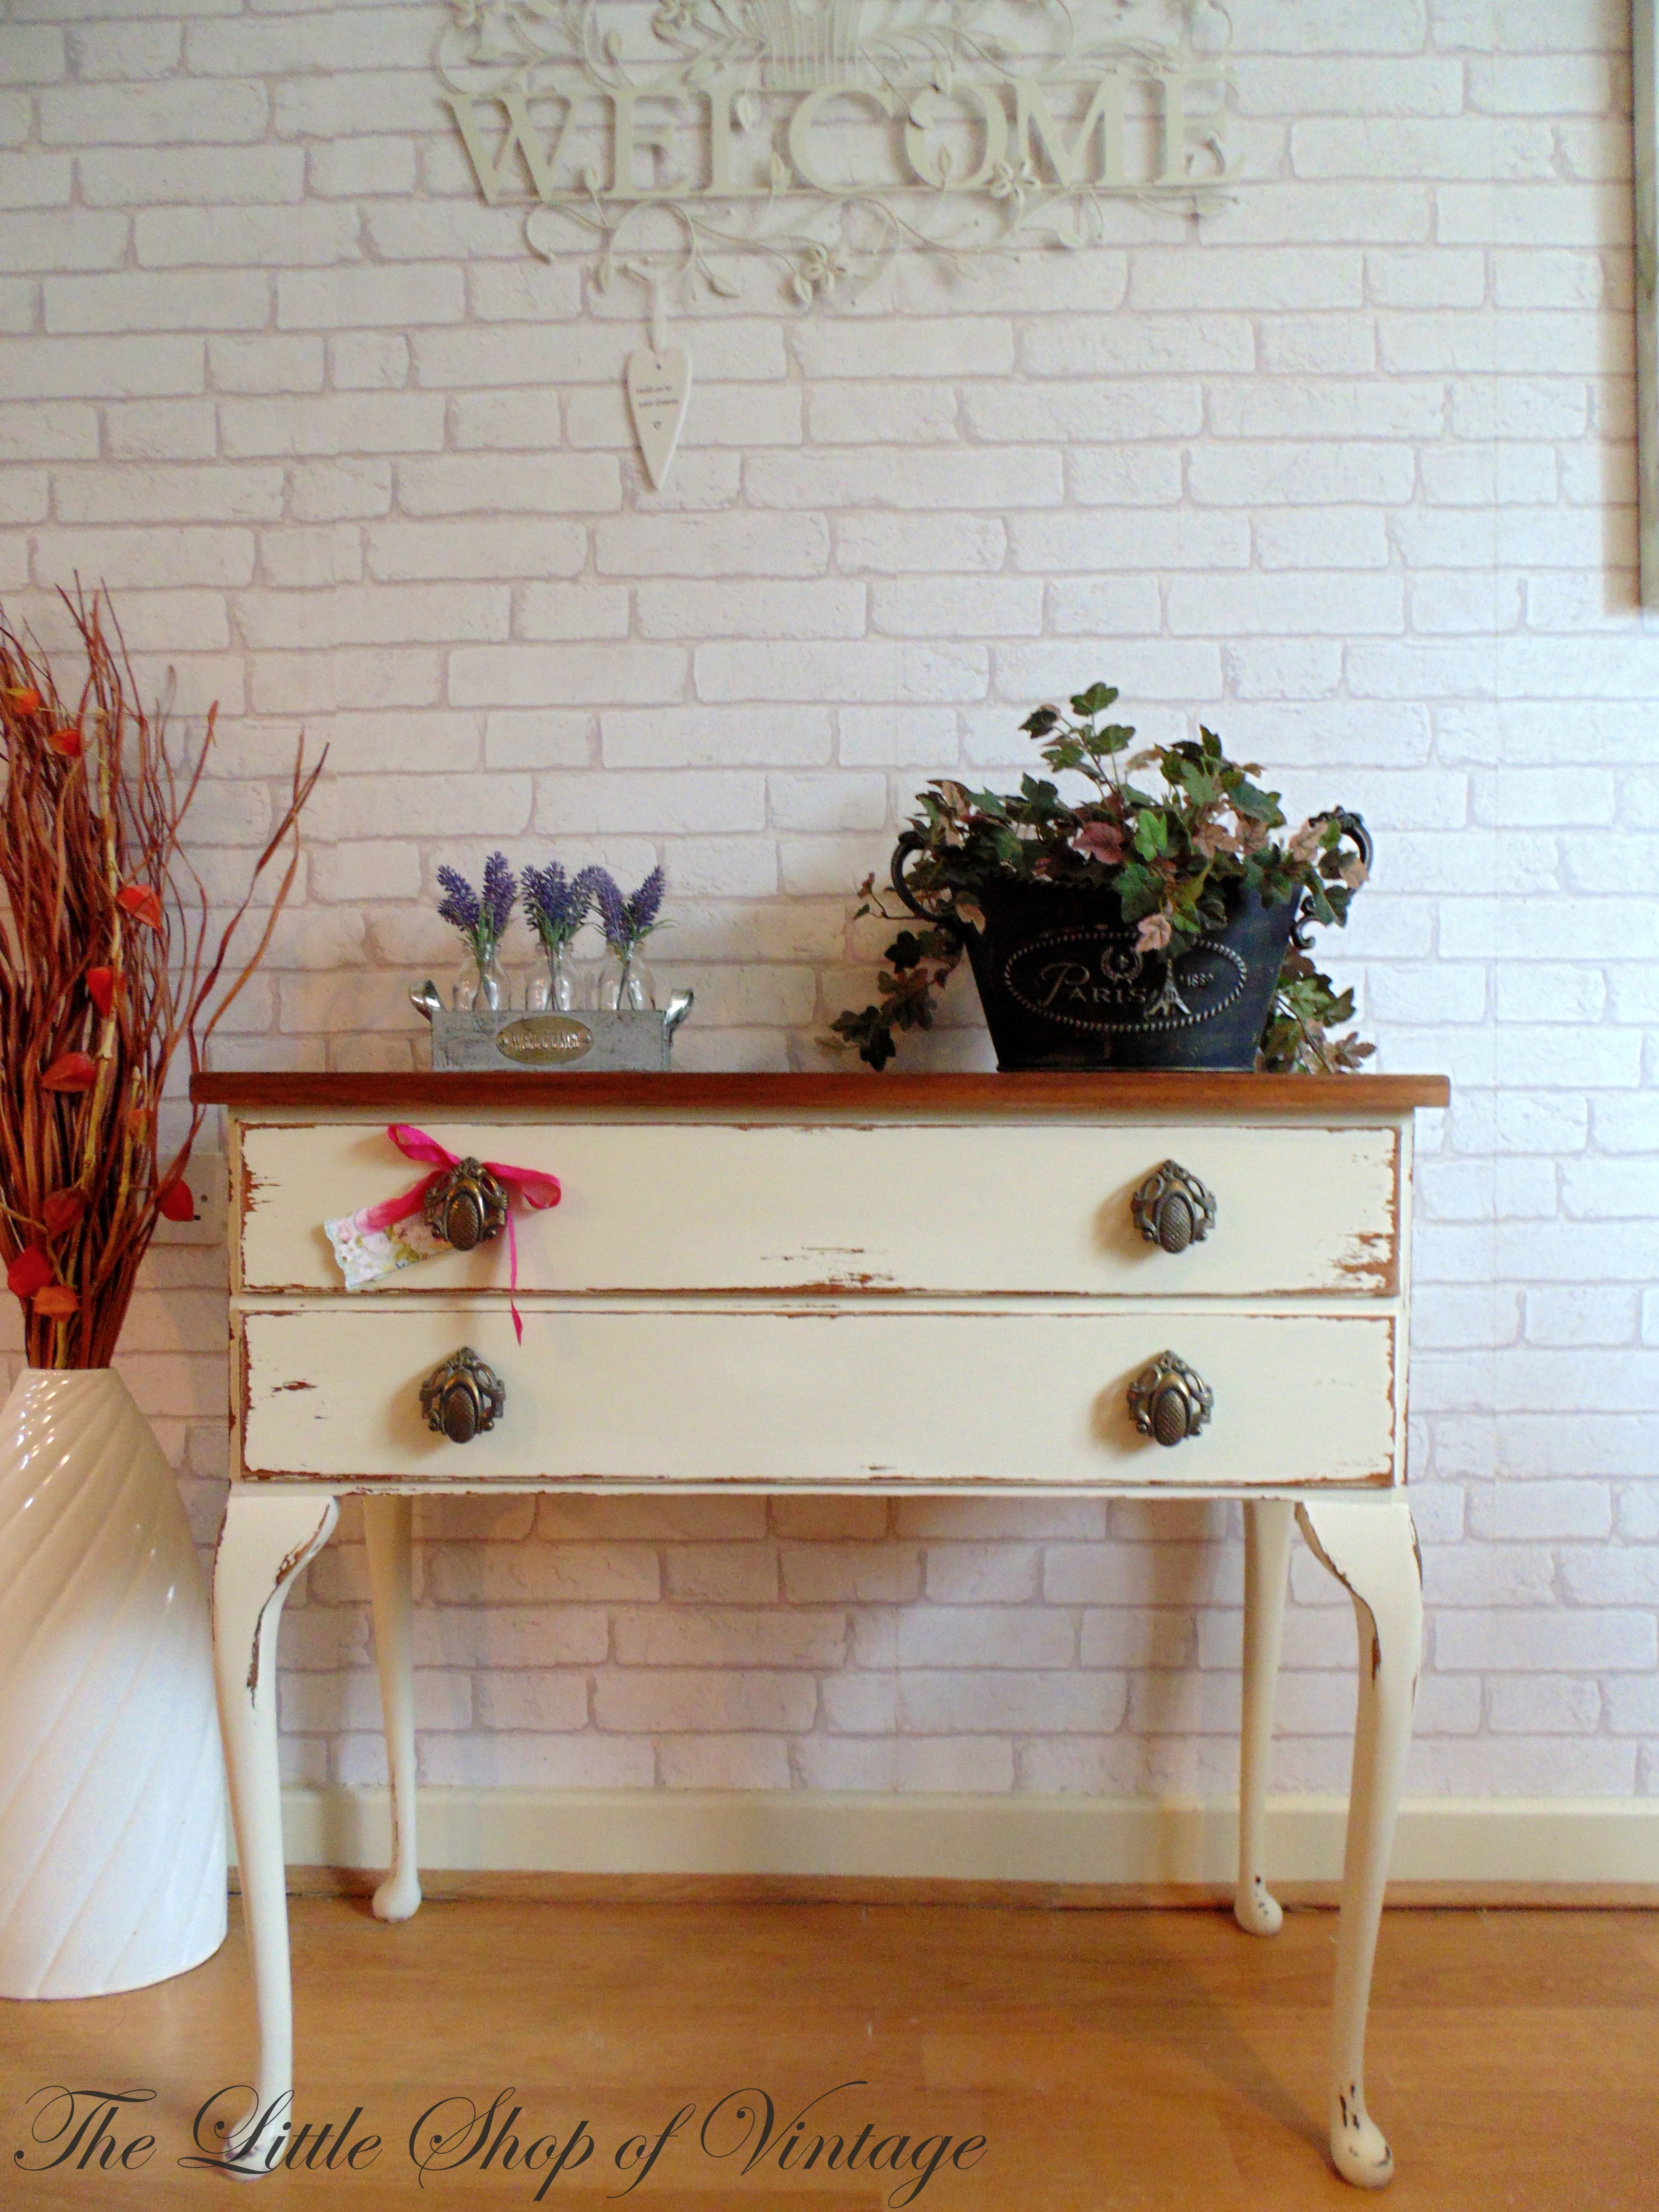 Shabby chic small console table painted in farrow ball off white shabby chic small console table painted in farrow ball off white then distressed beautiful geotapseo Choice Image